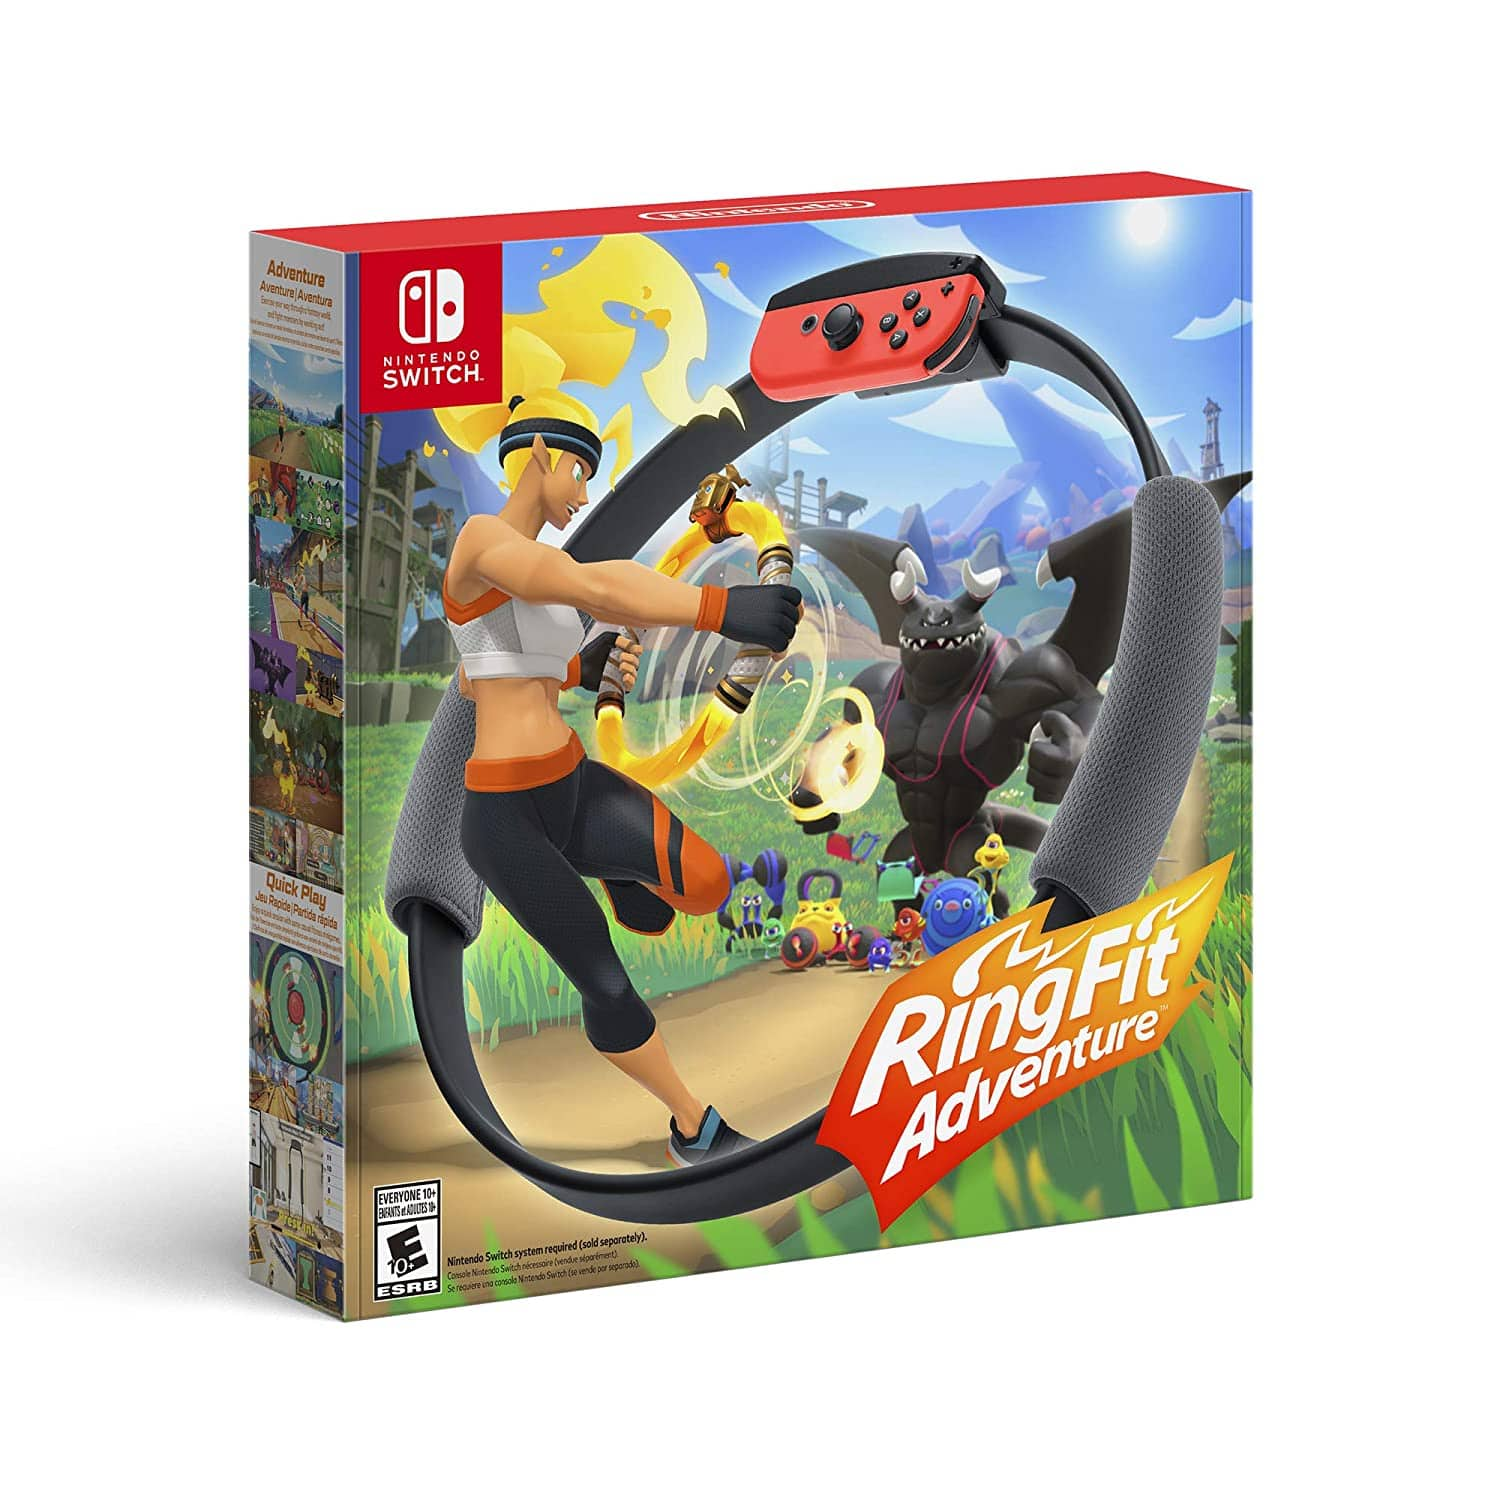 Ring Fit Adventure - Nintendo Switch - Back in stock on Amazon.com $79.99